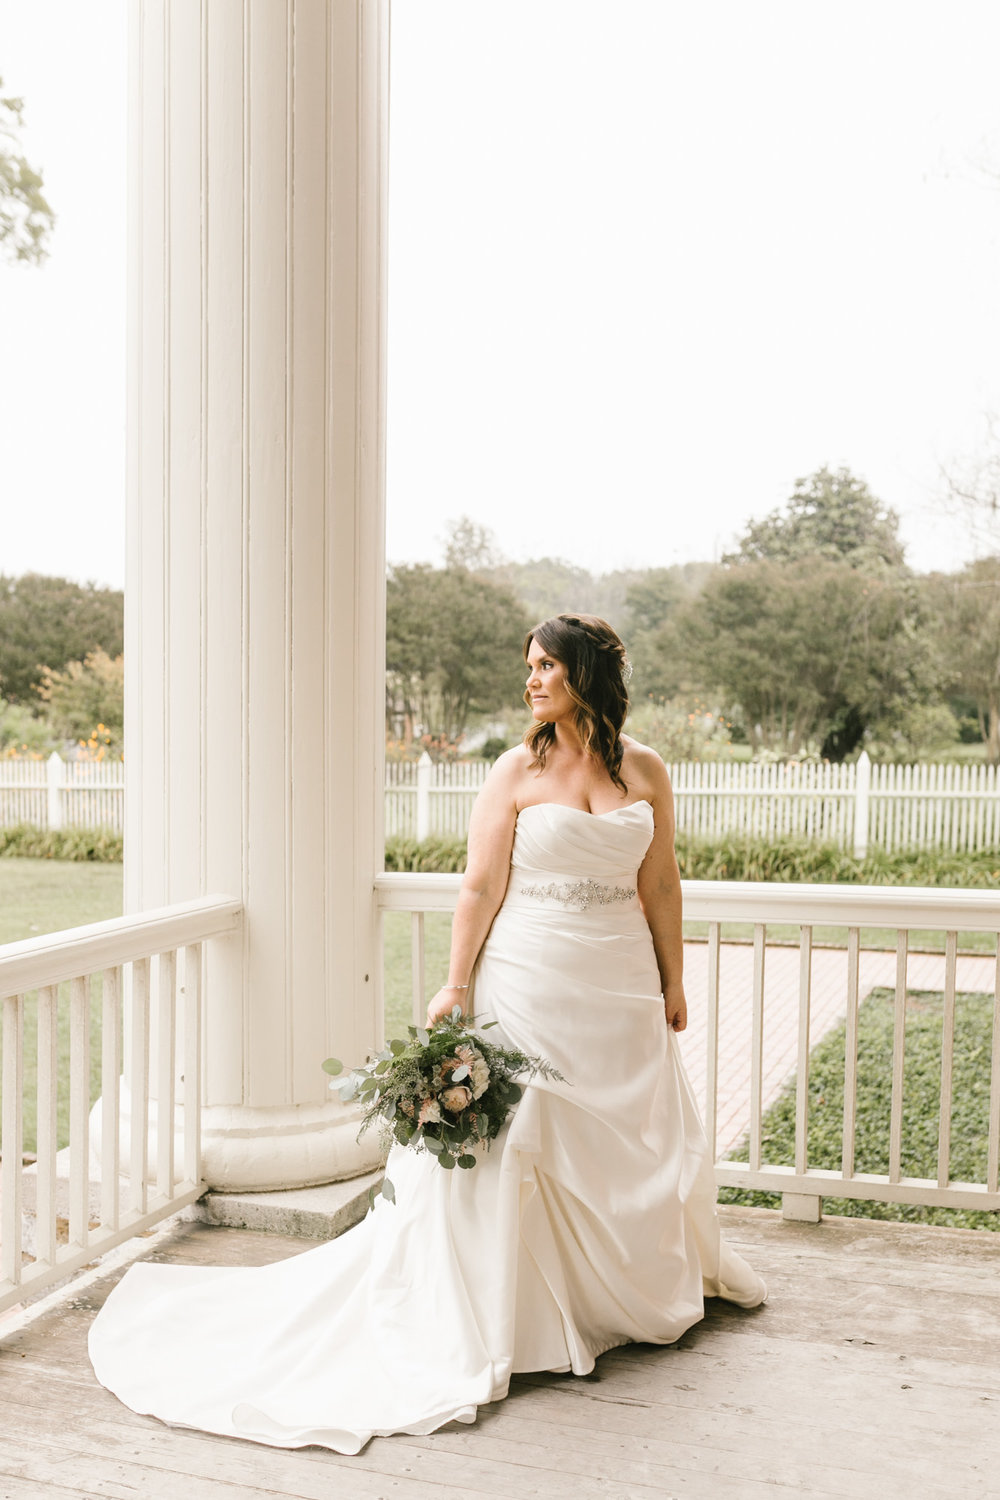 Nashville-weddings-AmyAllmandPhotography-18.jpg